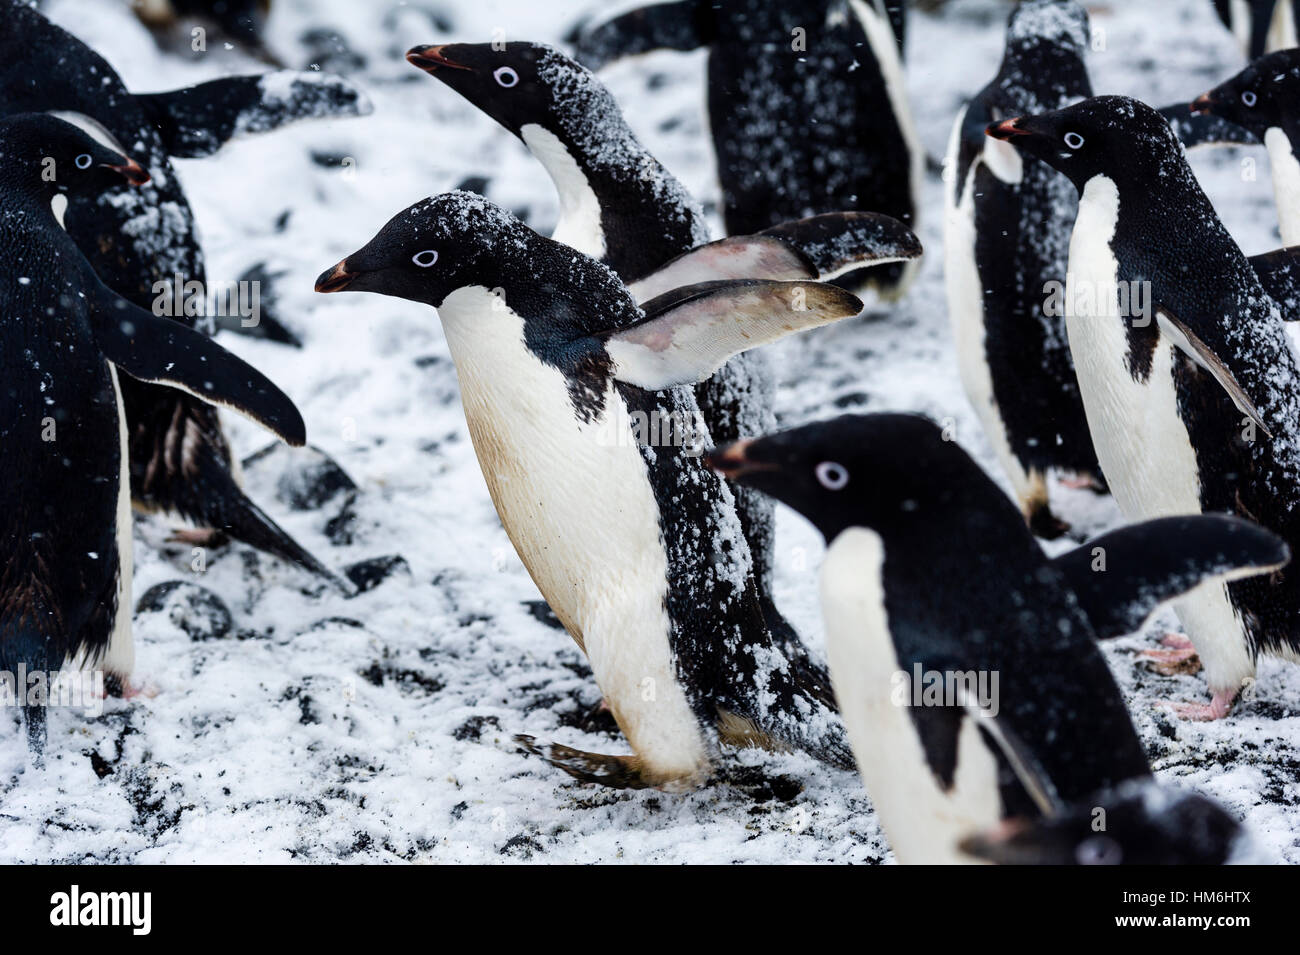 A breeding colony of Adelie Penguins during a snow storm on an island in Antarctica. - Stock Image